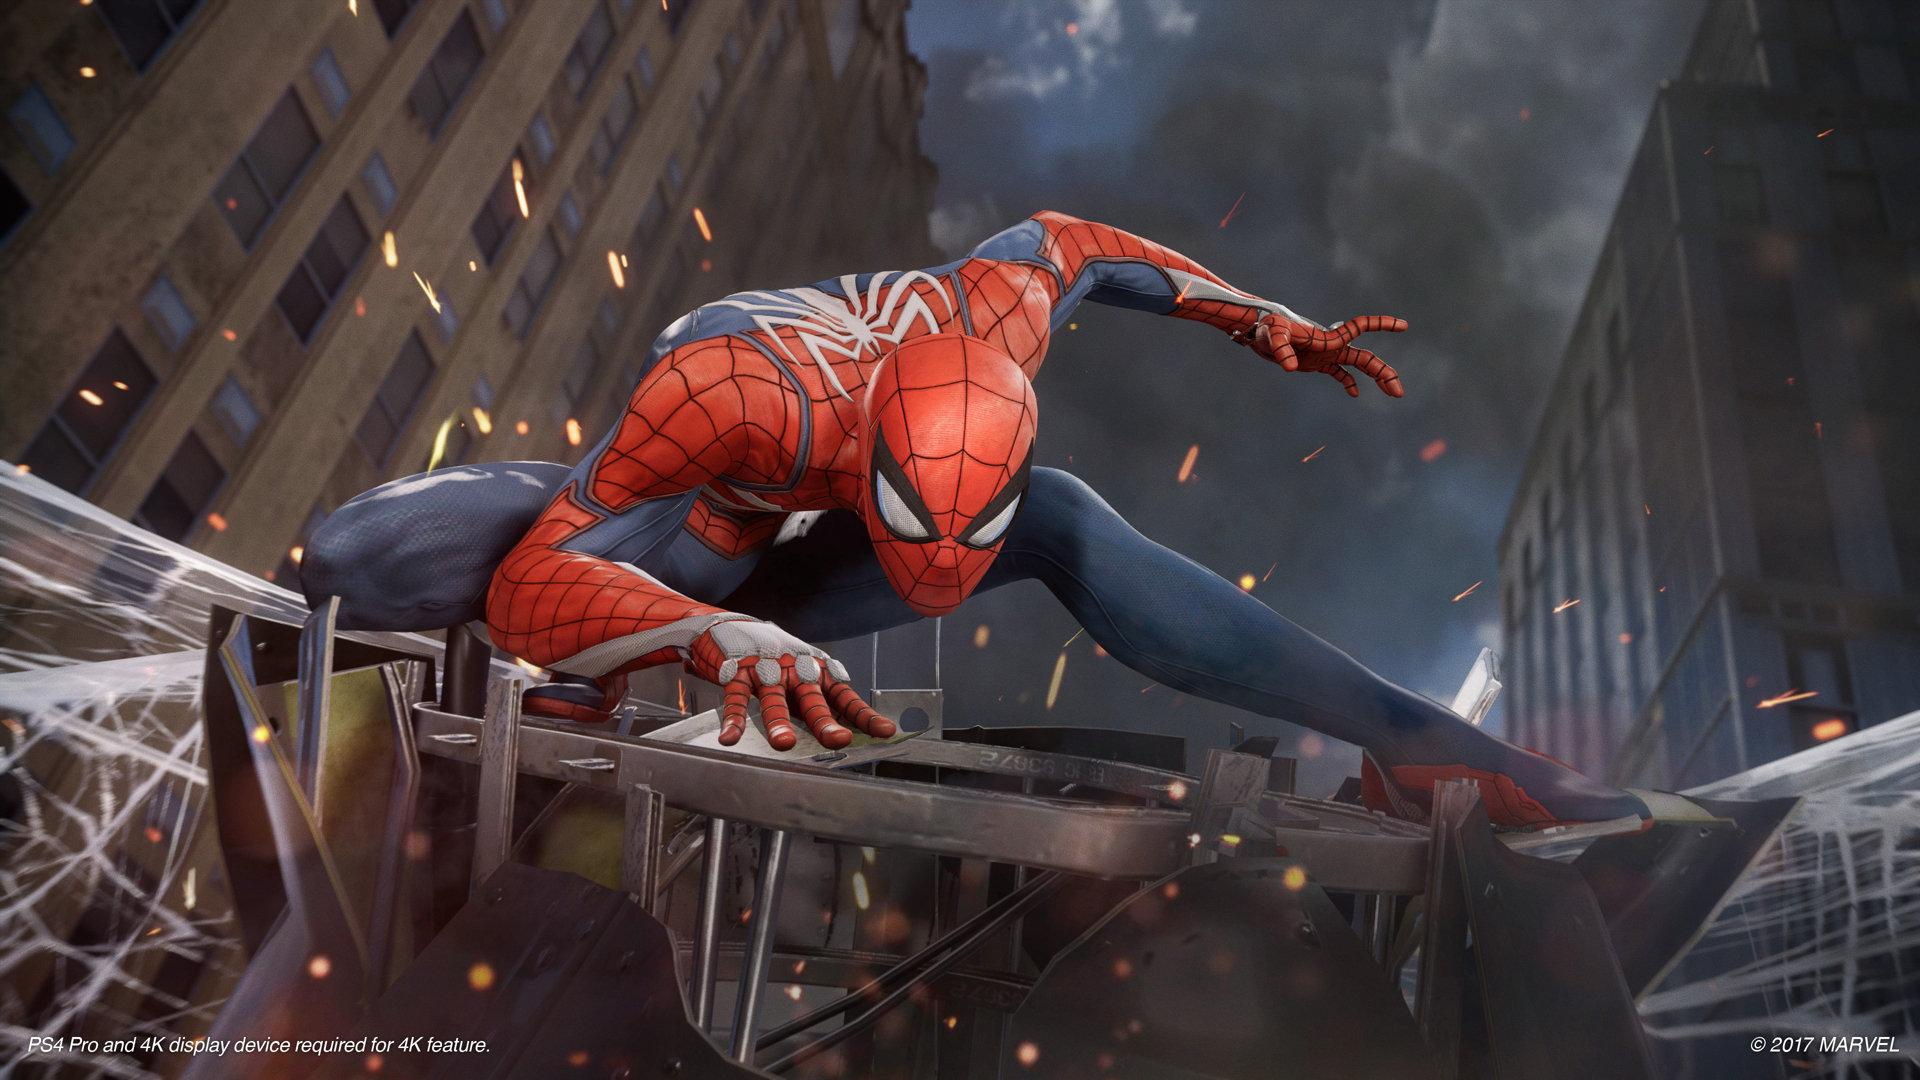 Playable Spider-Man code is highly likely